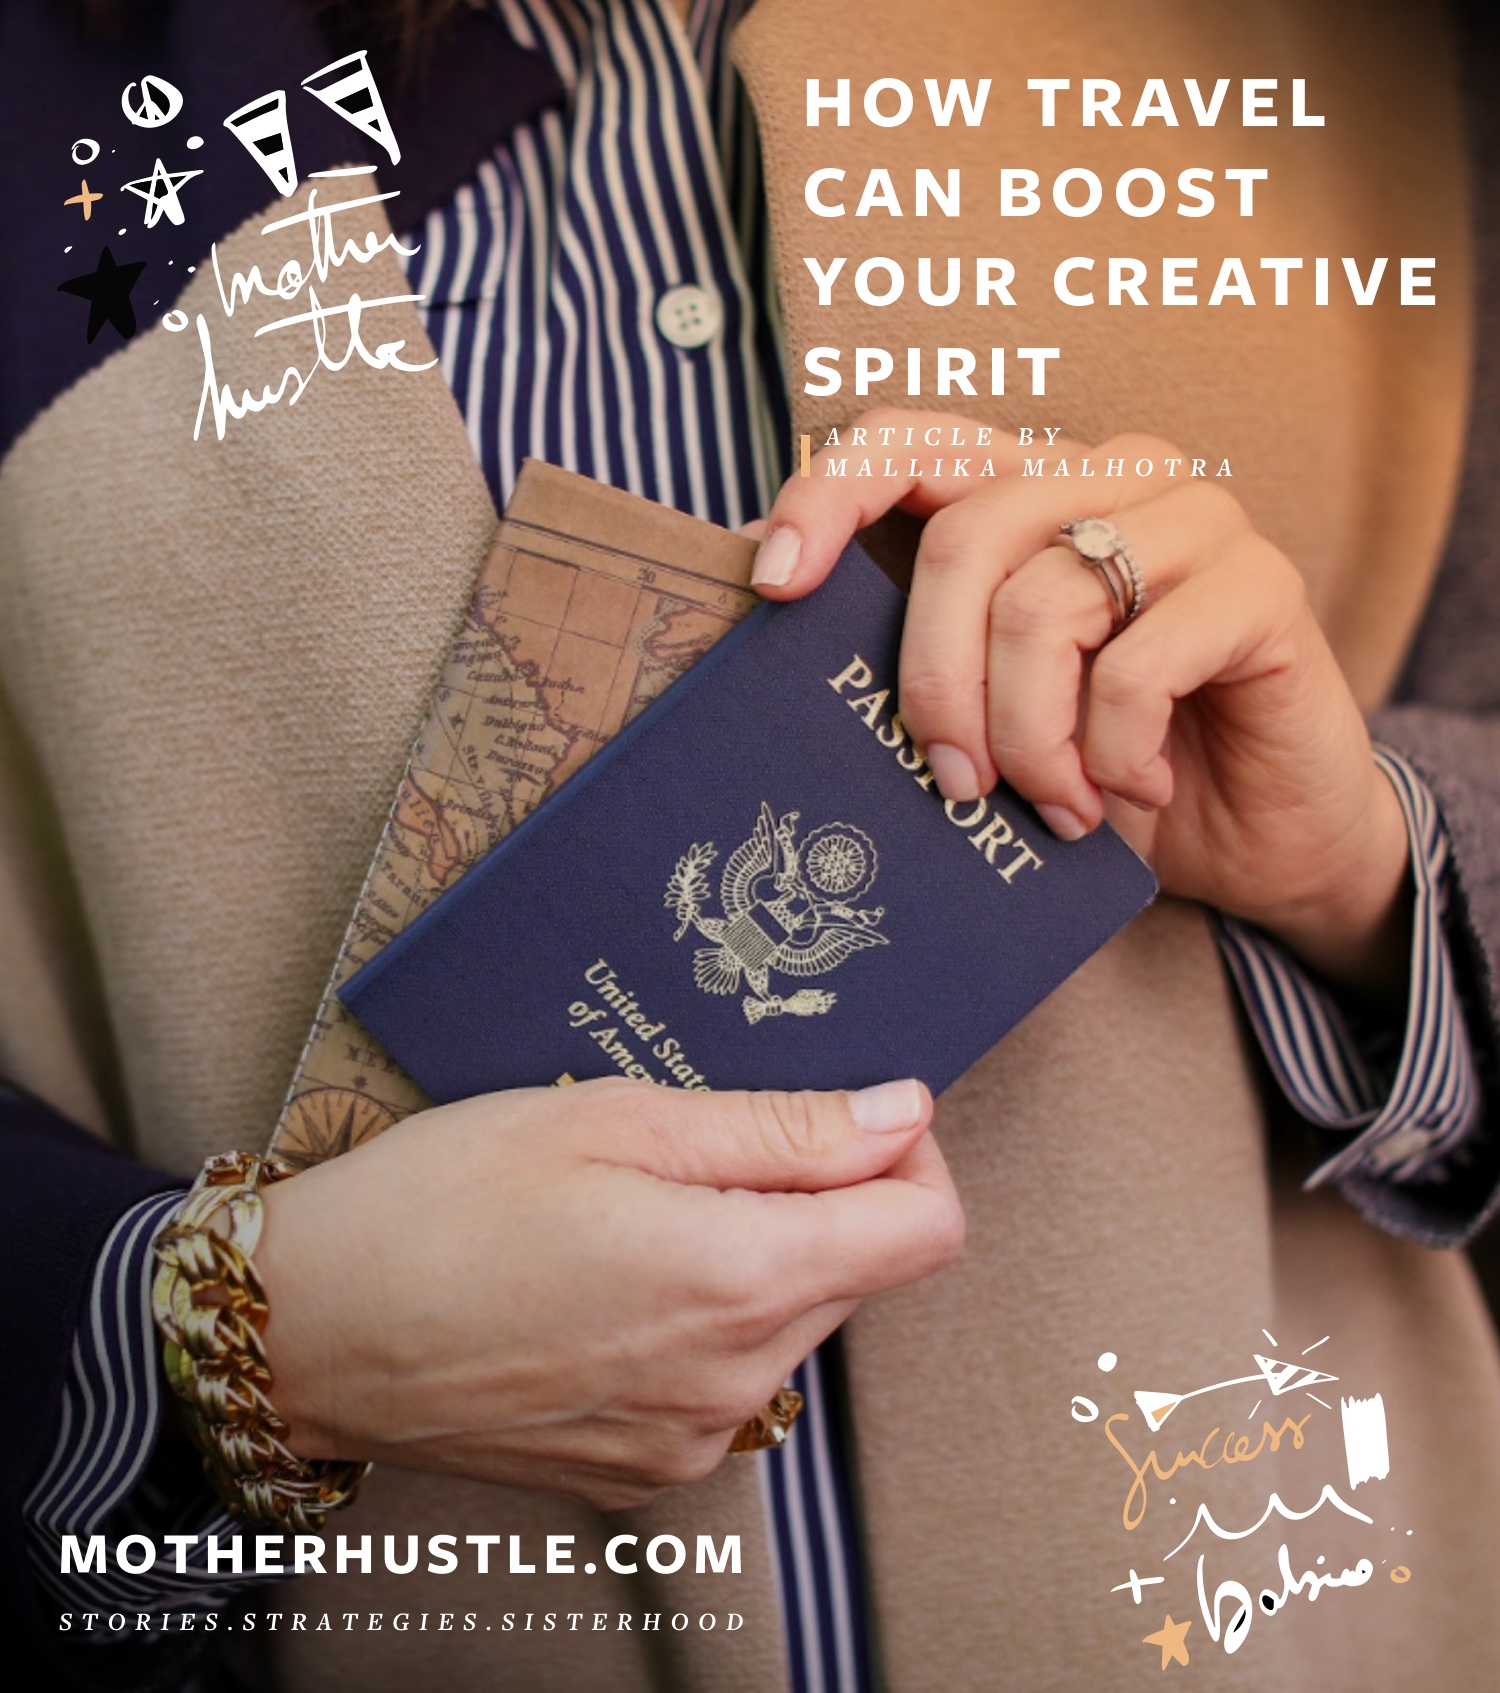 How Travel Can Boost Your Creative Spirit - Mallika Malhotra MotherHustle